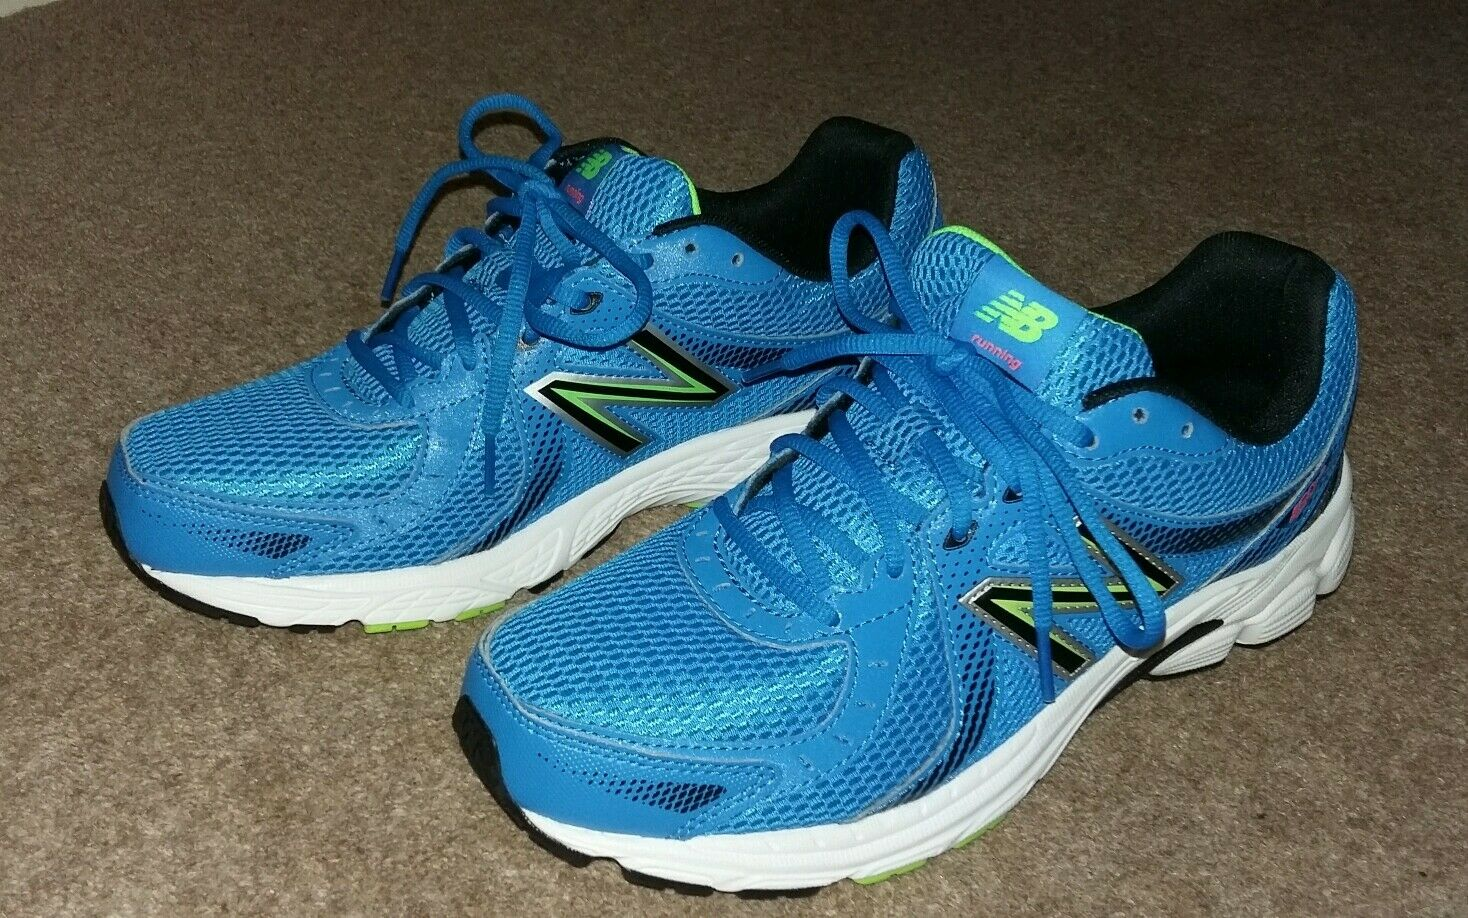 Unisex Men's Women's New Balance 450 v3 bluee Trainers size 8 with white sole